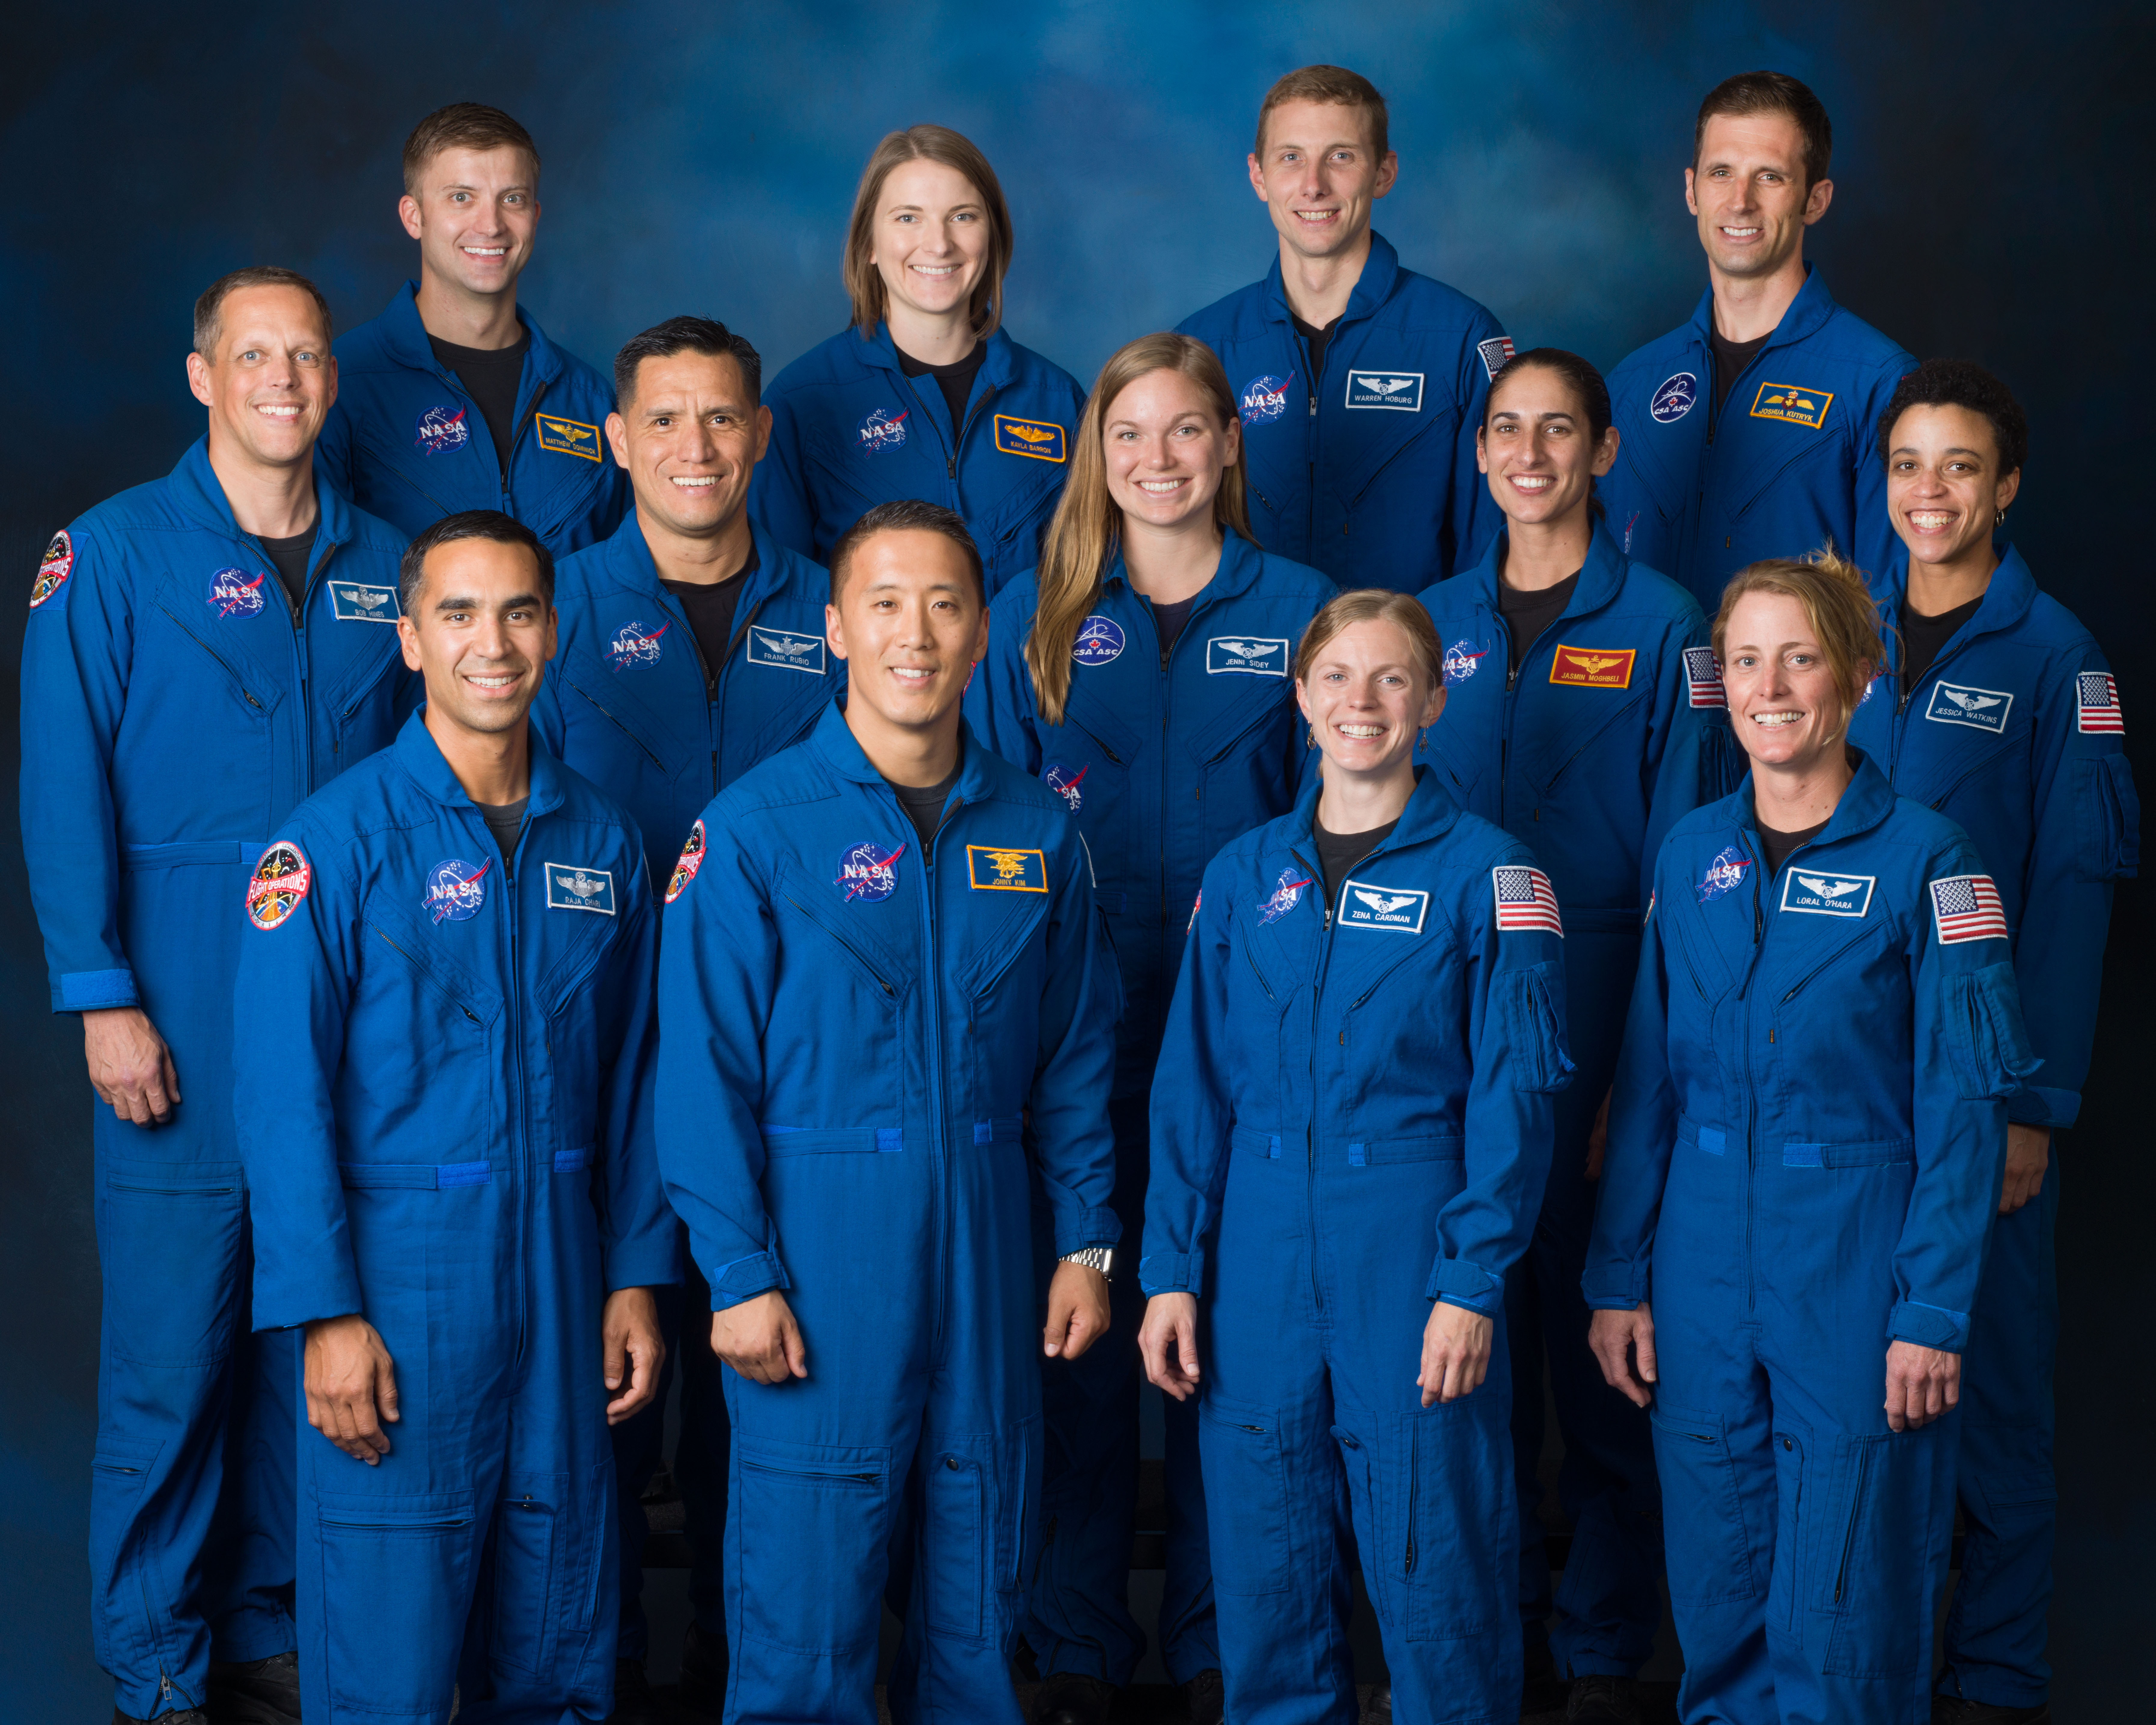 NASA's Astronaut Candidates to Graduate with Eye on Artemis Missions